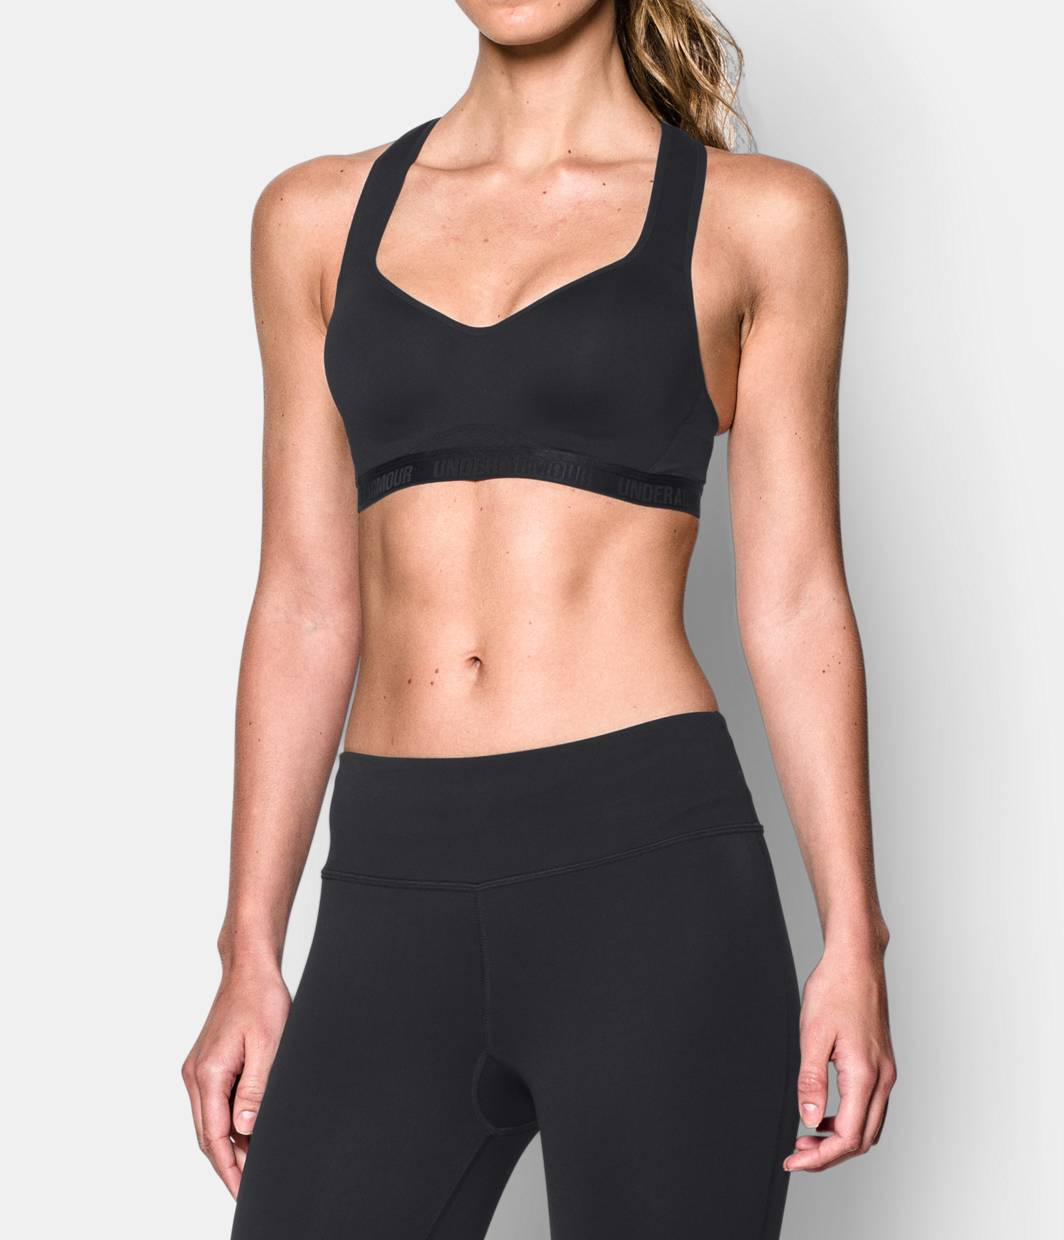 Women's High Impact Sports Bras | Under Armour US